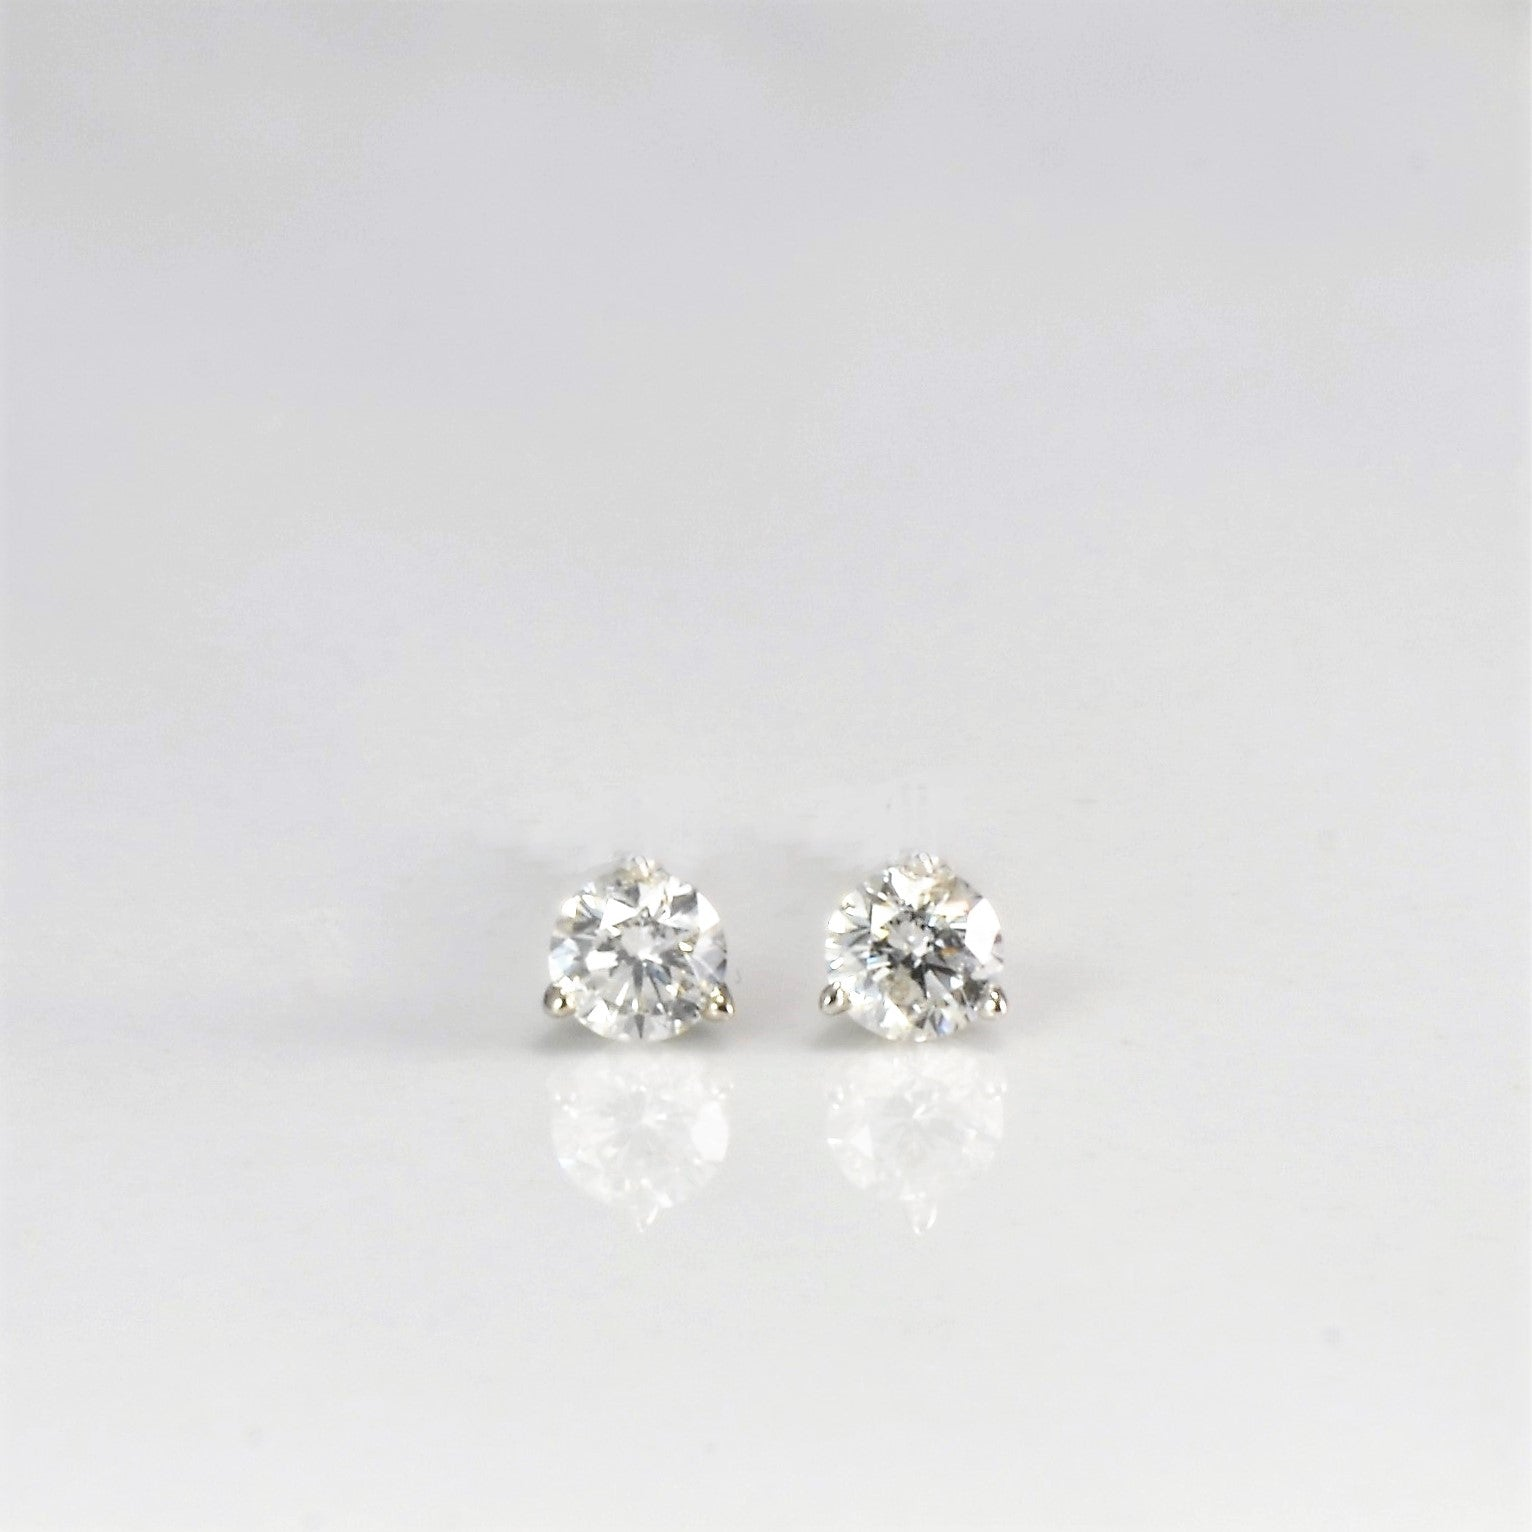 Martini Set Thread Back Diamond Studs | 0.12 ctw |